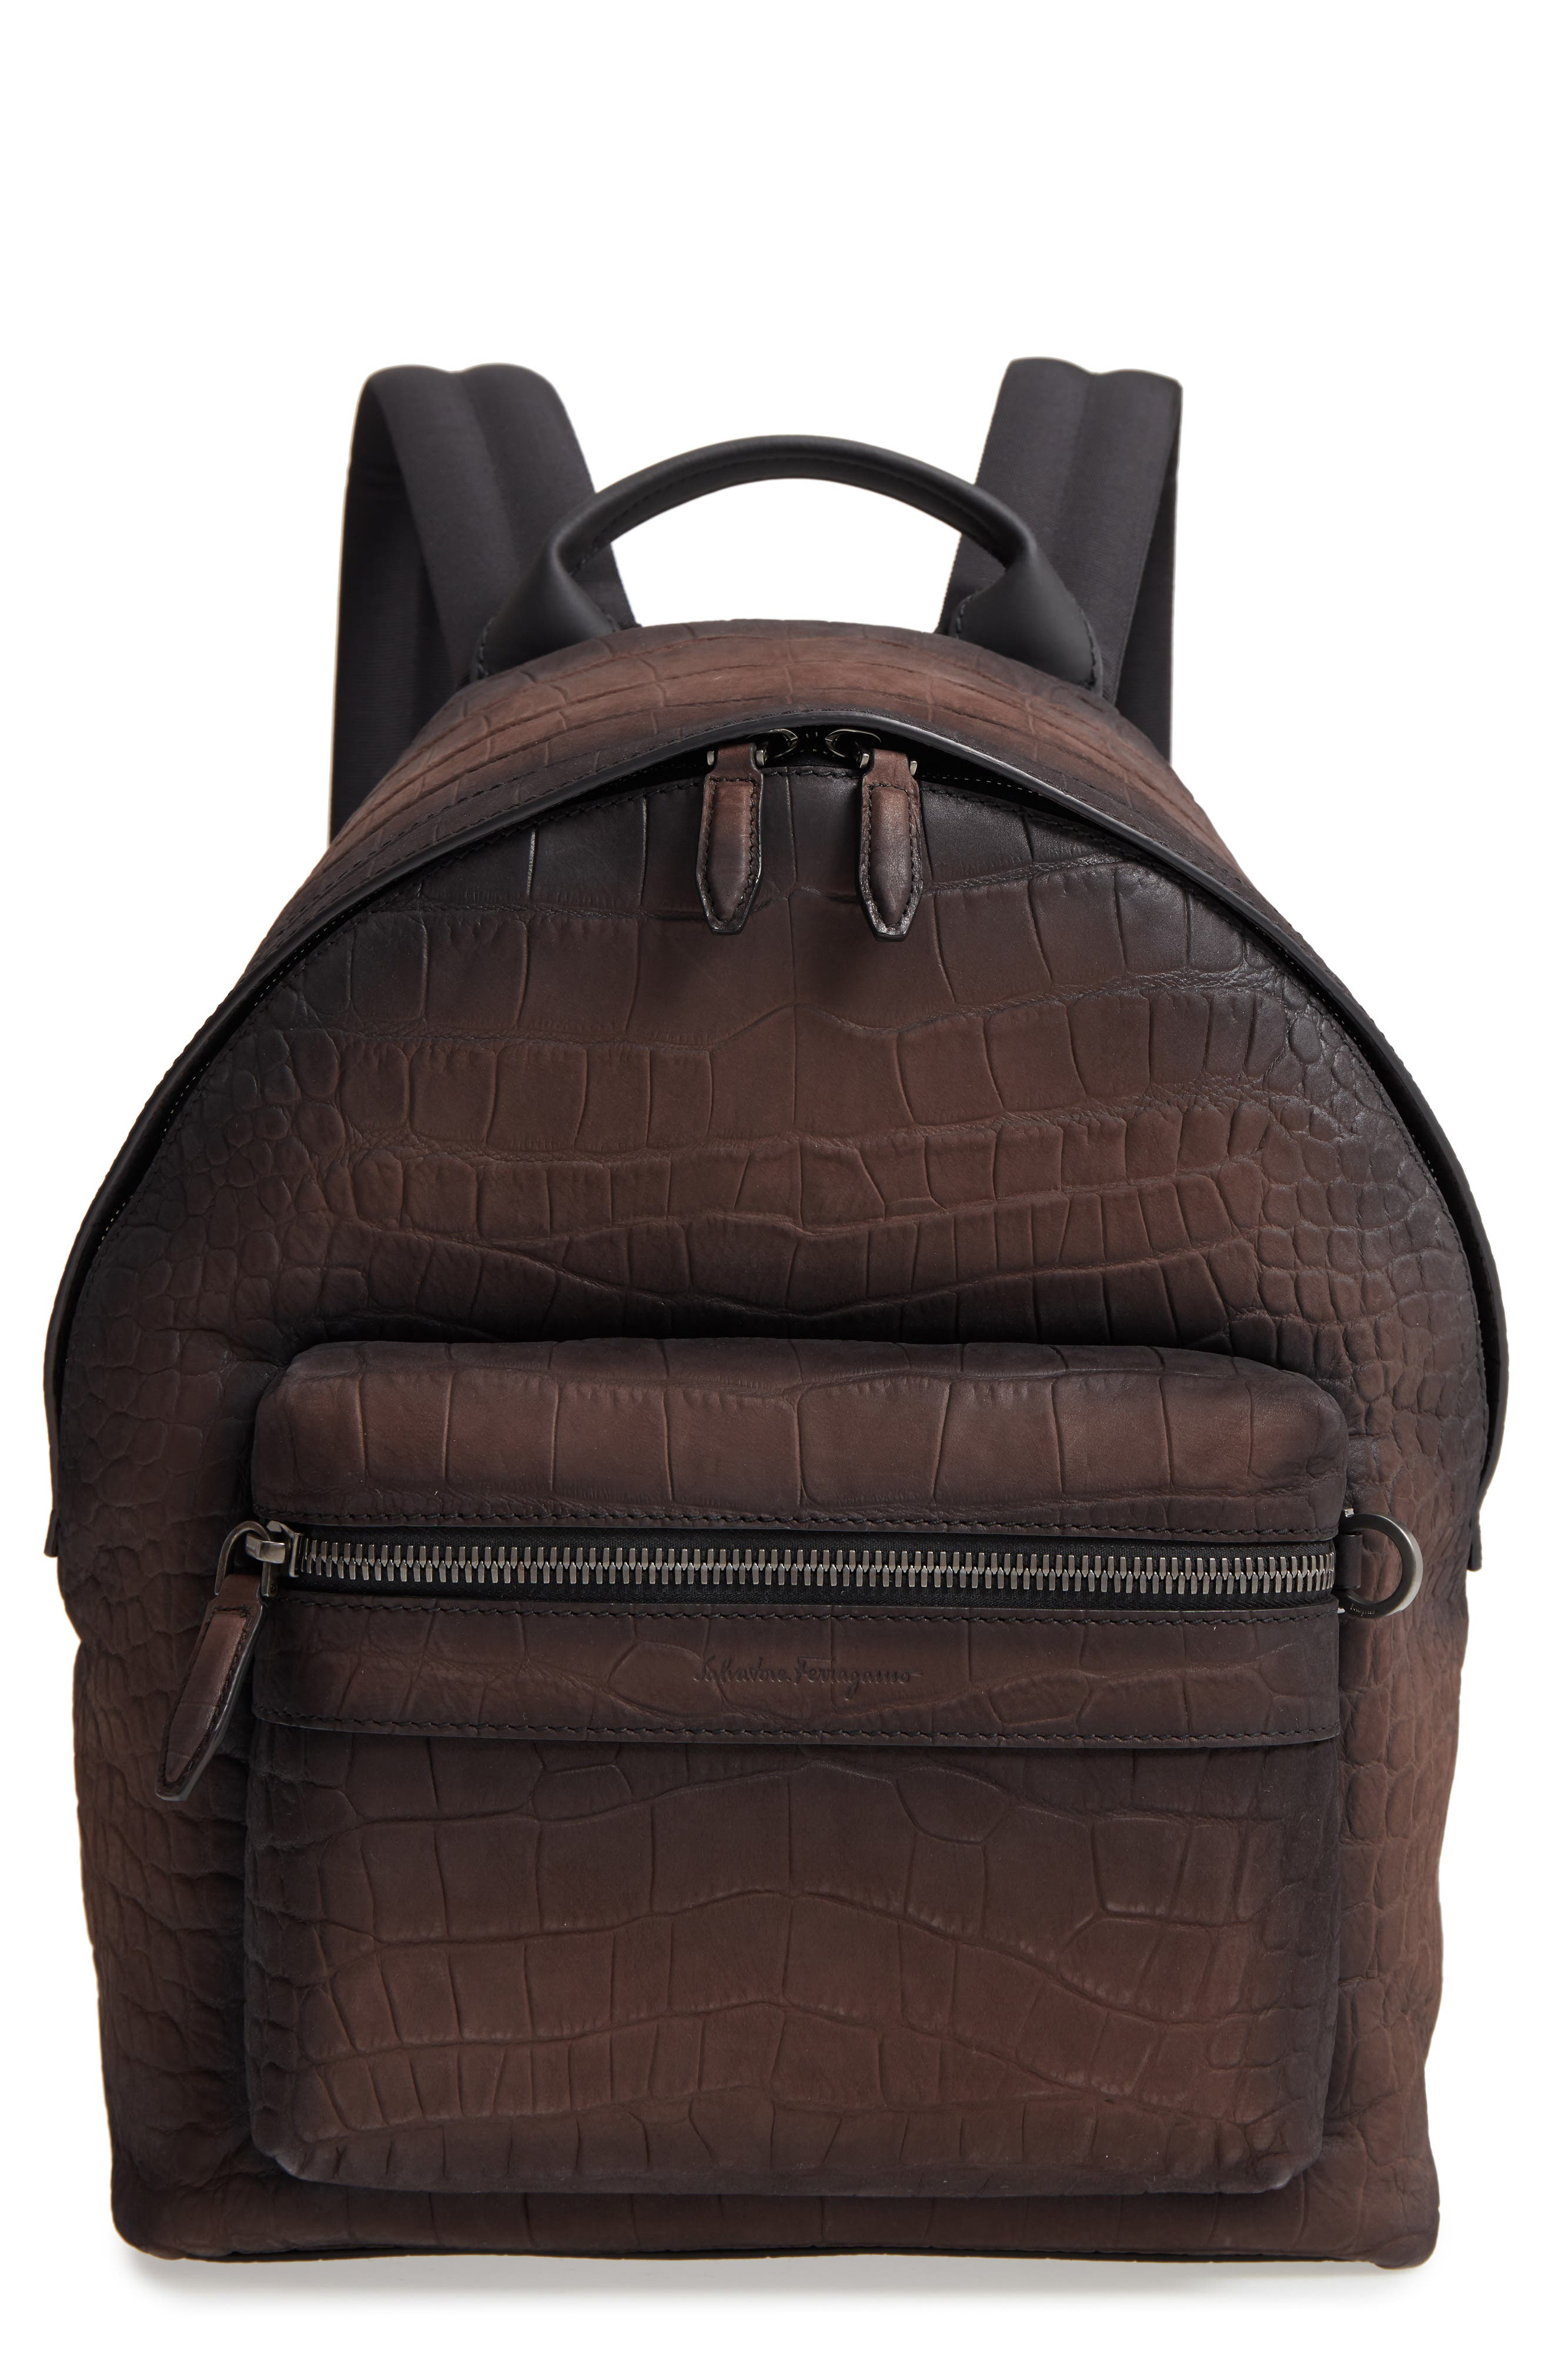 FIRENZE LEATHER BACKPACK - BROWN